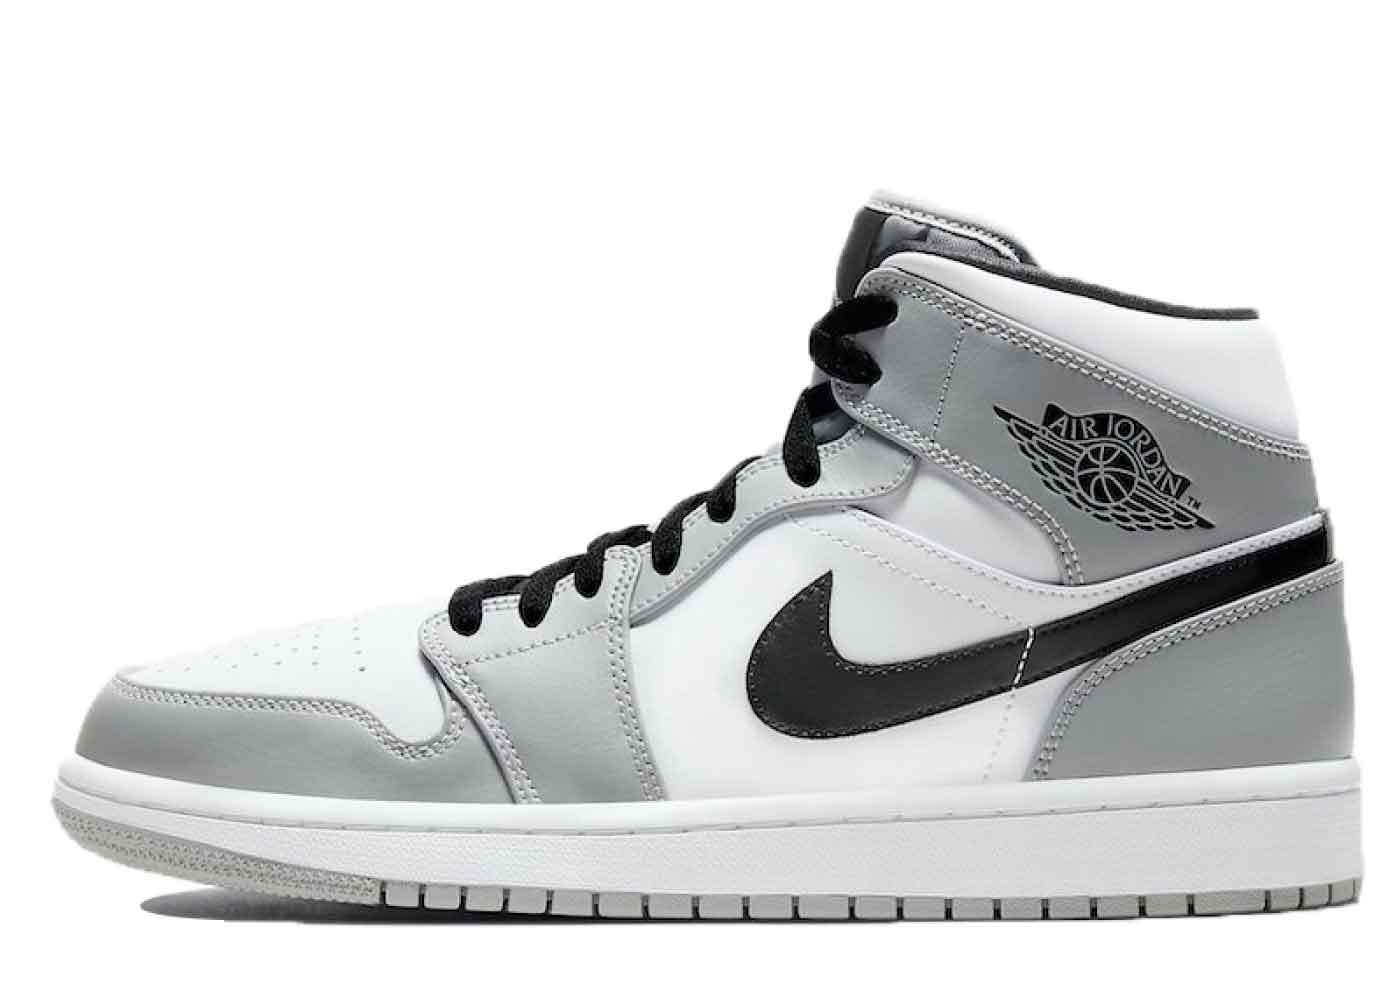 Nike Air Jordan 1 Mid Light Smoke Greyの写真